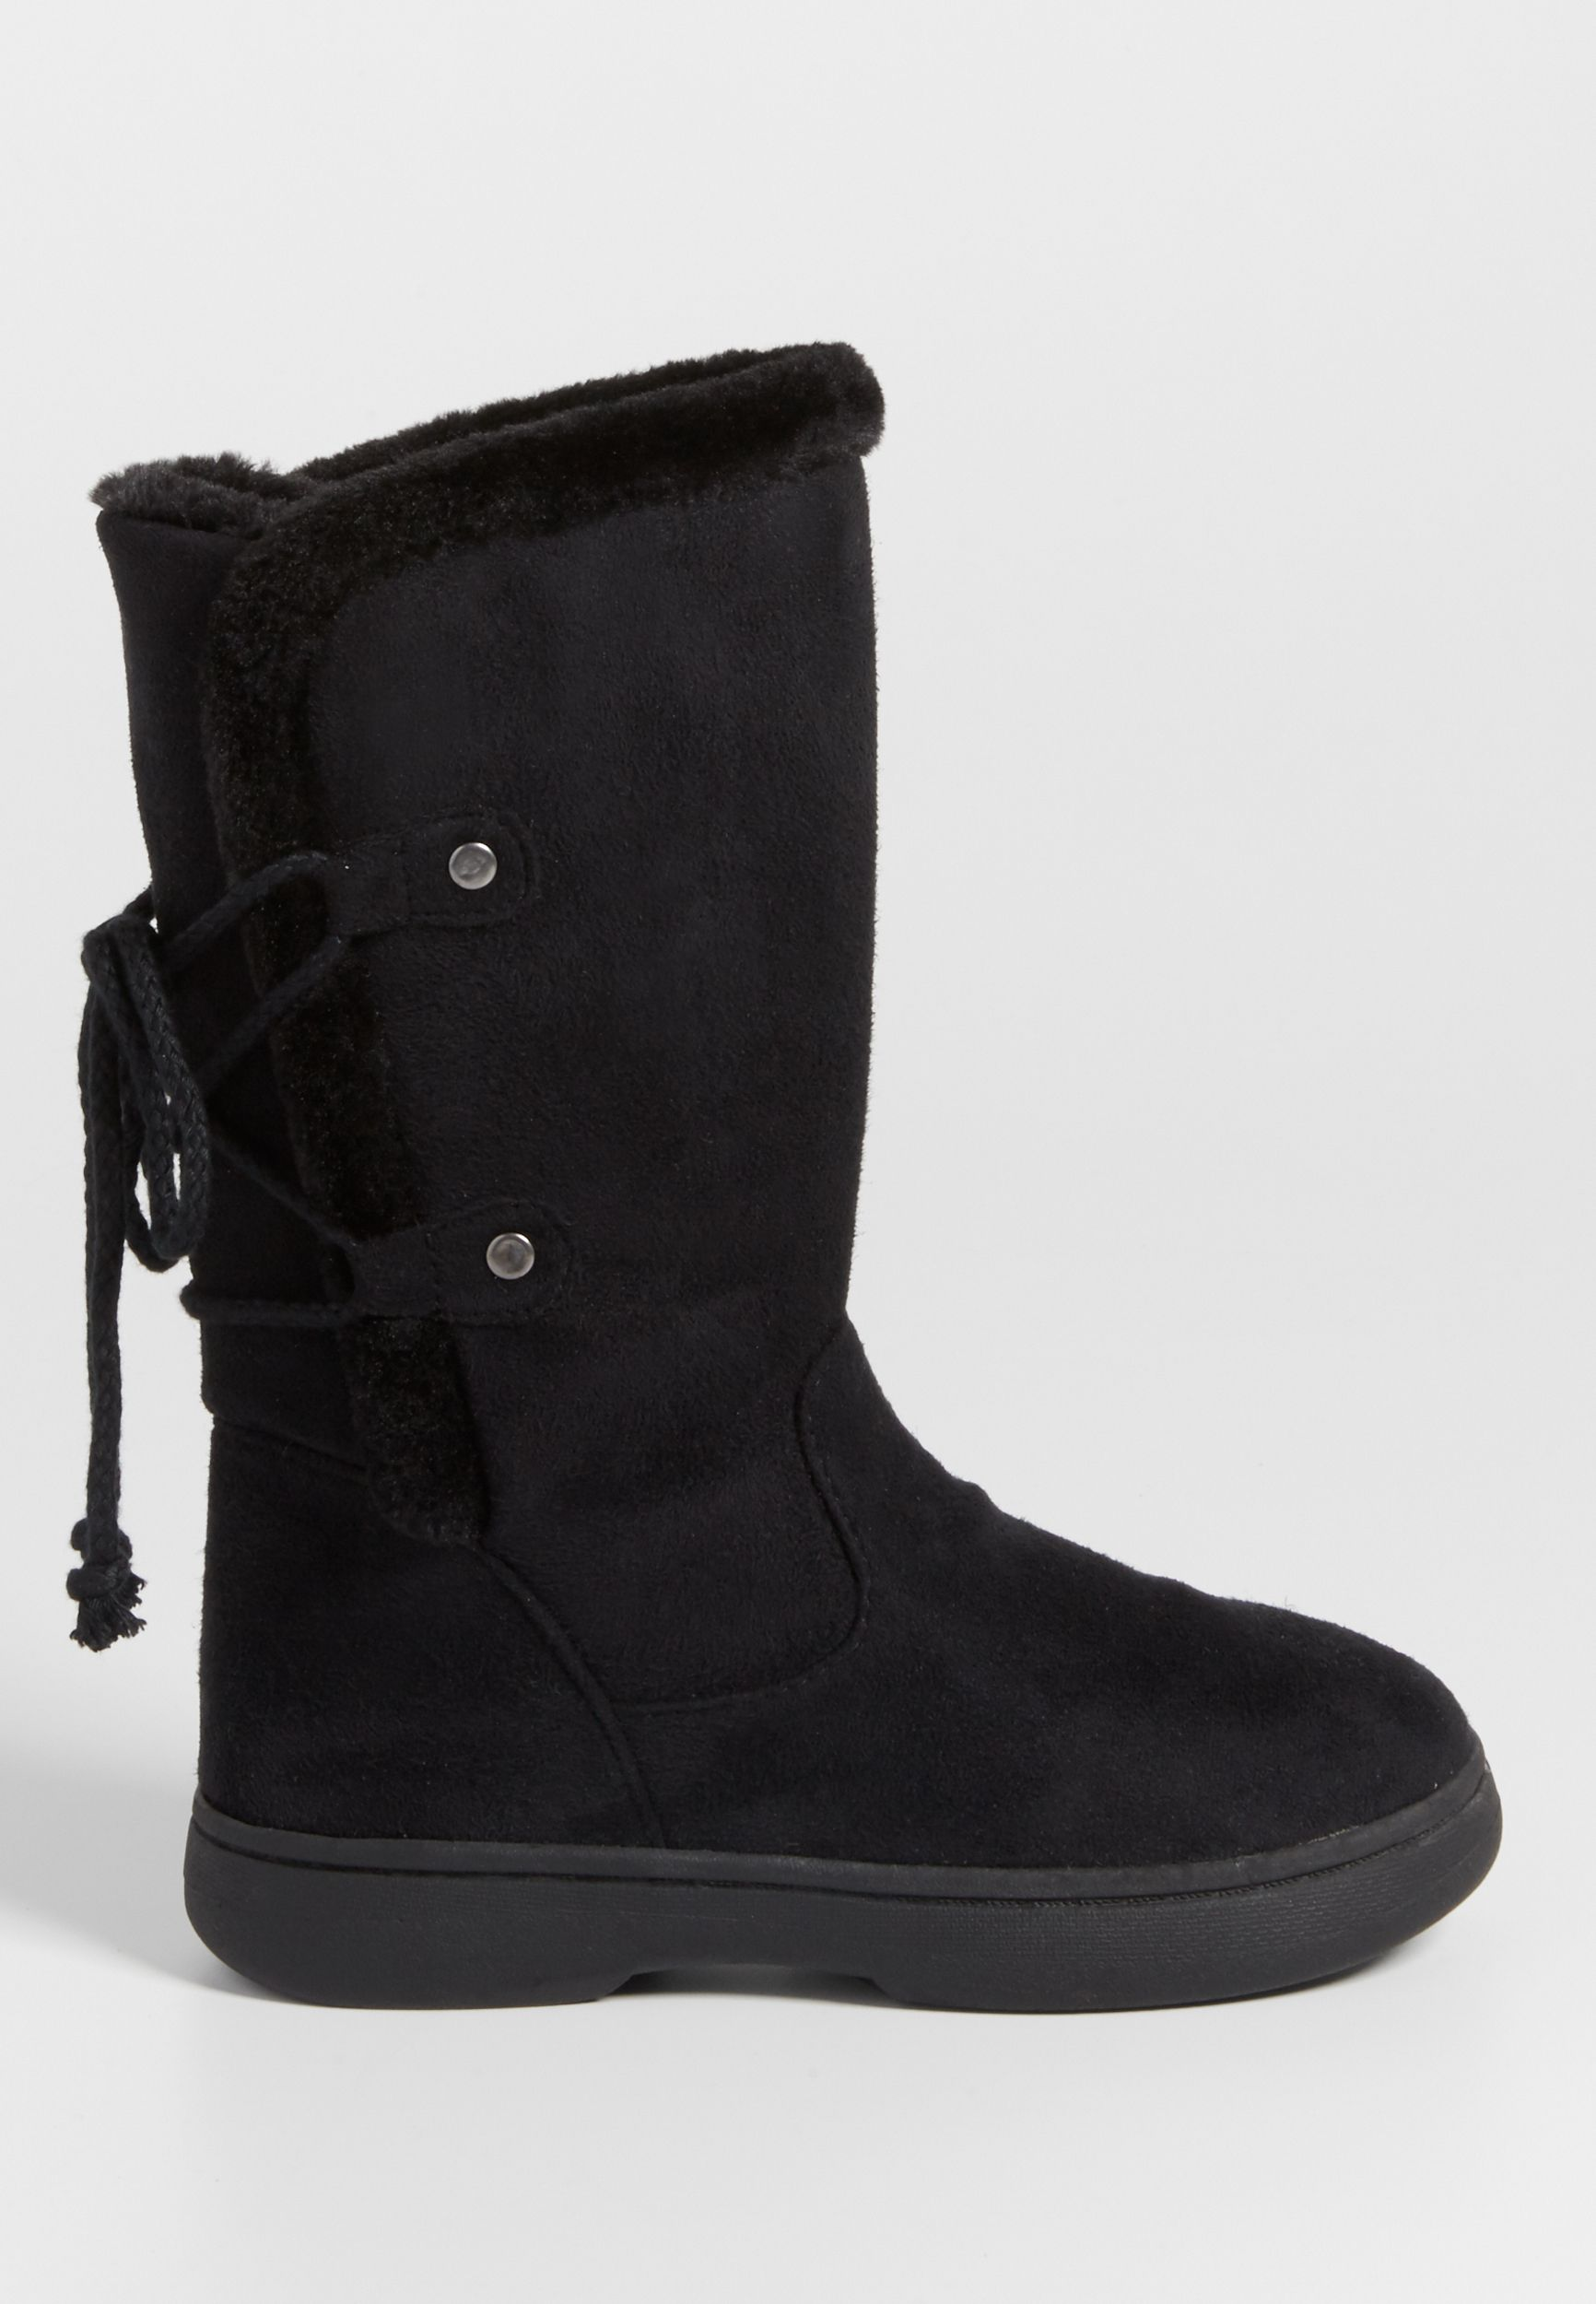 c12fc2b15 Nina faux suede boot with faux fur lining and lace up back in black ...